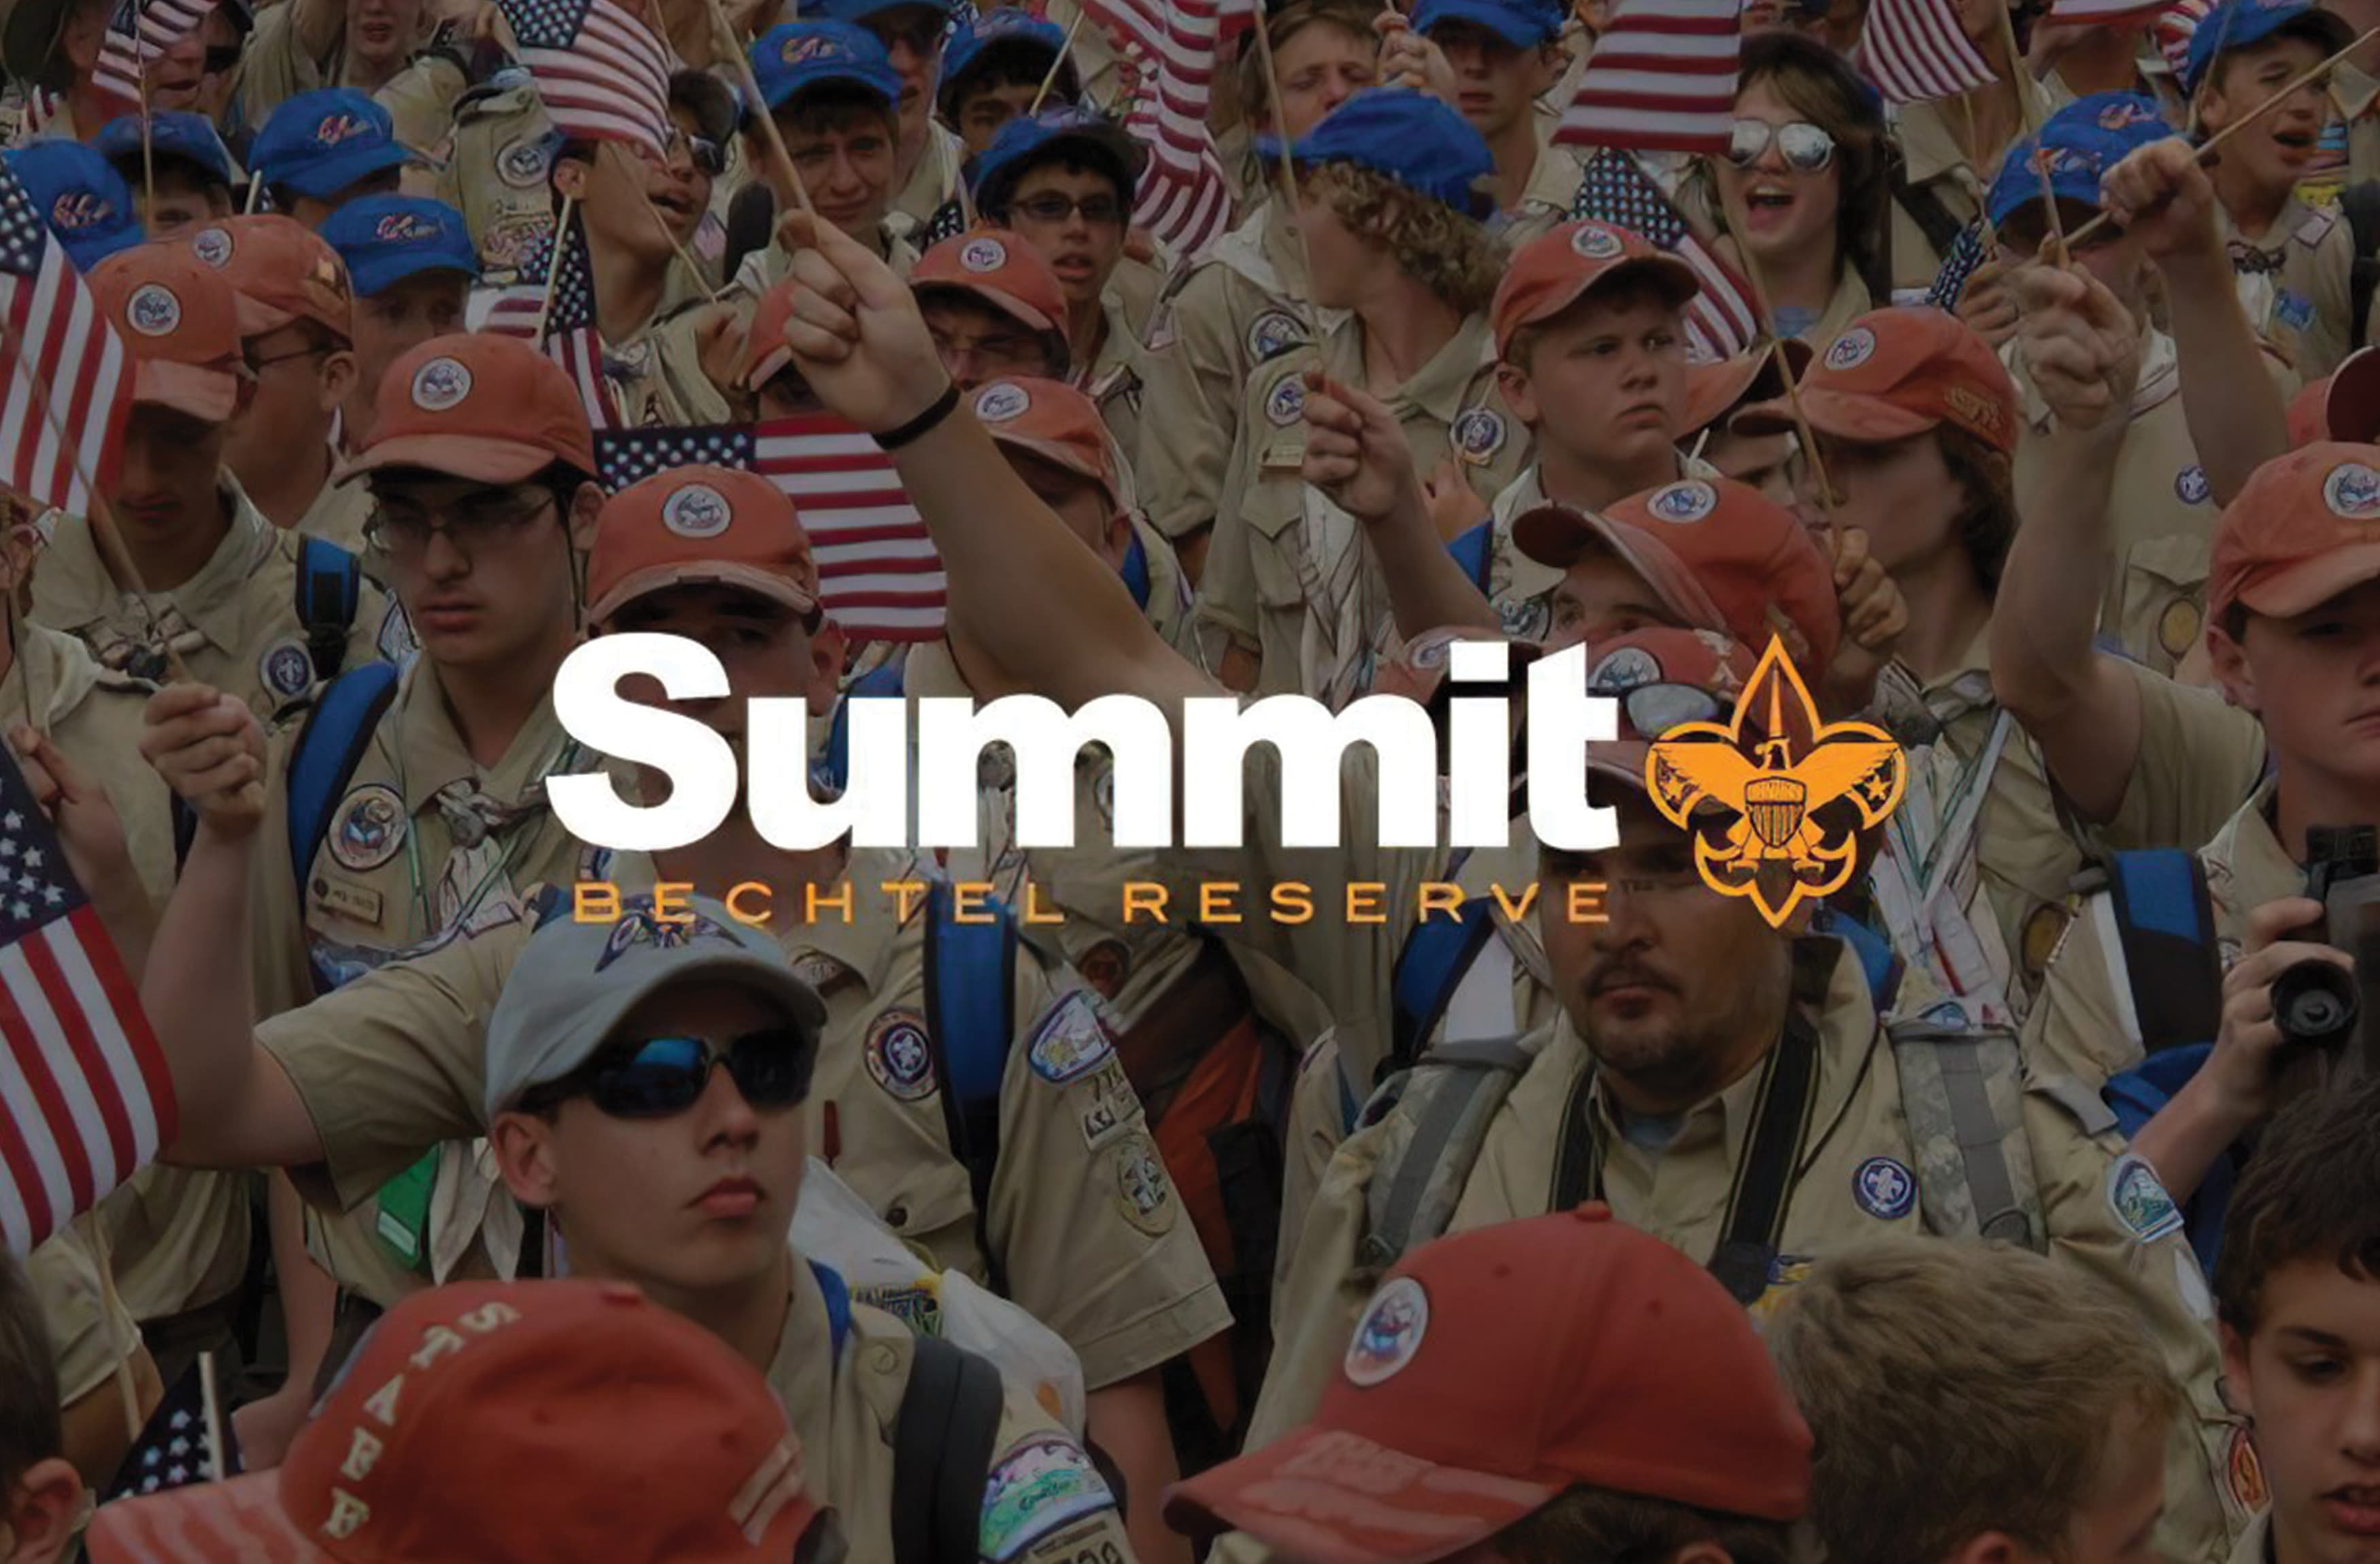 The logo for Summit Bechtel Reserve overlaid on an image of Scouts with American flags.